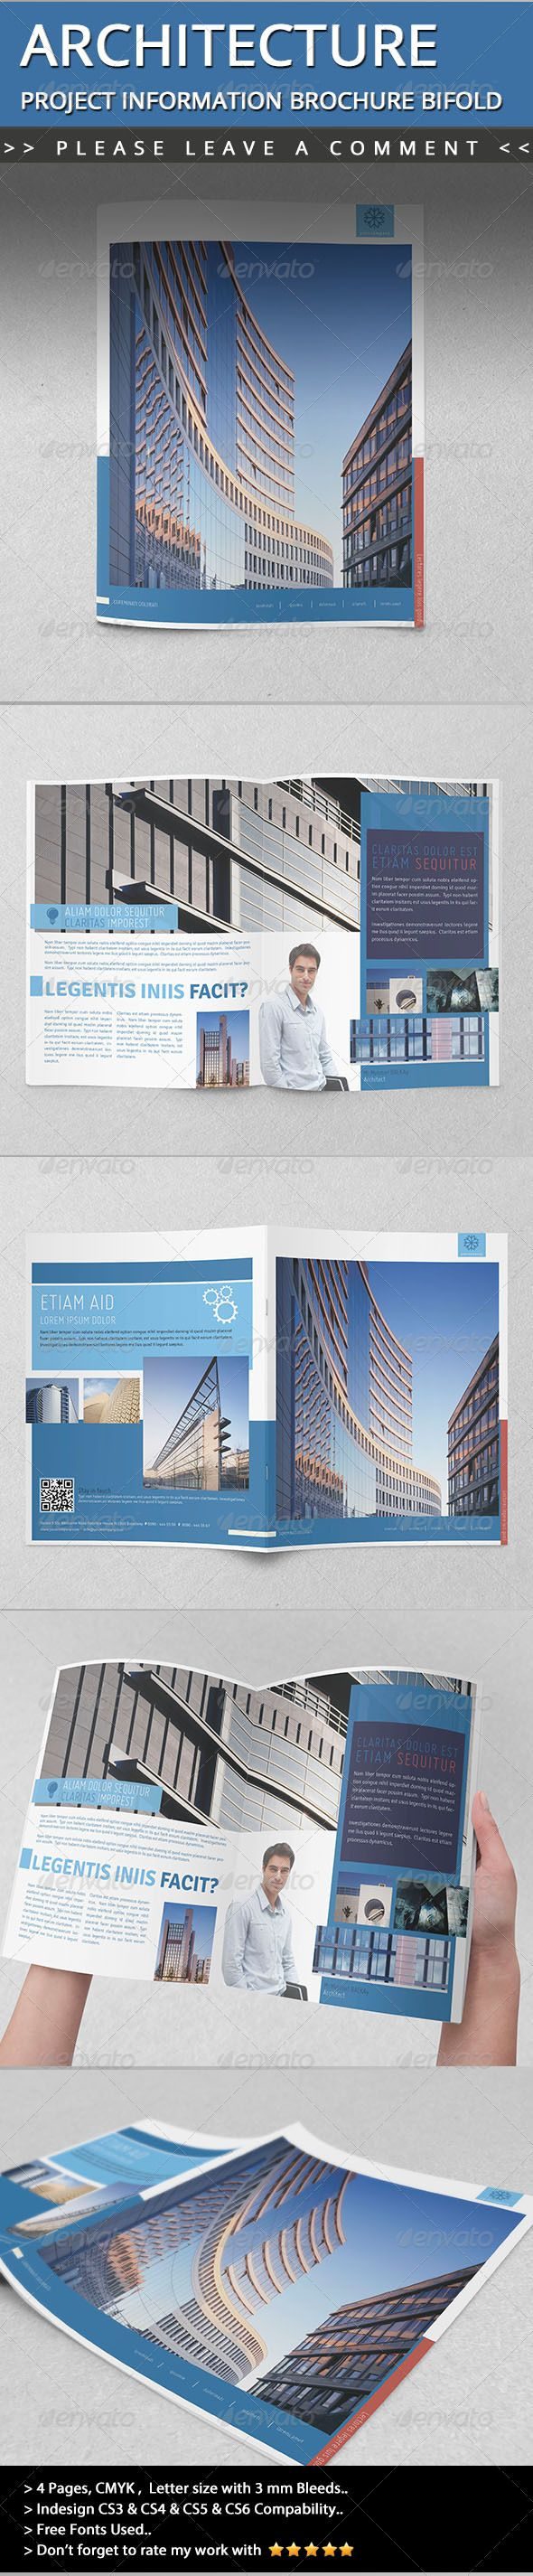 Architecture Project Information Brochure Bifold Brochures - Information brochure template